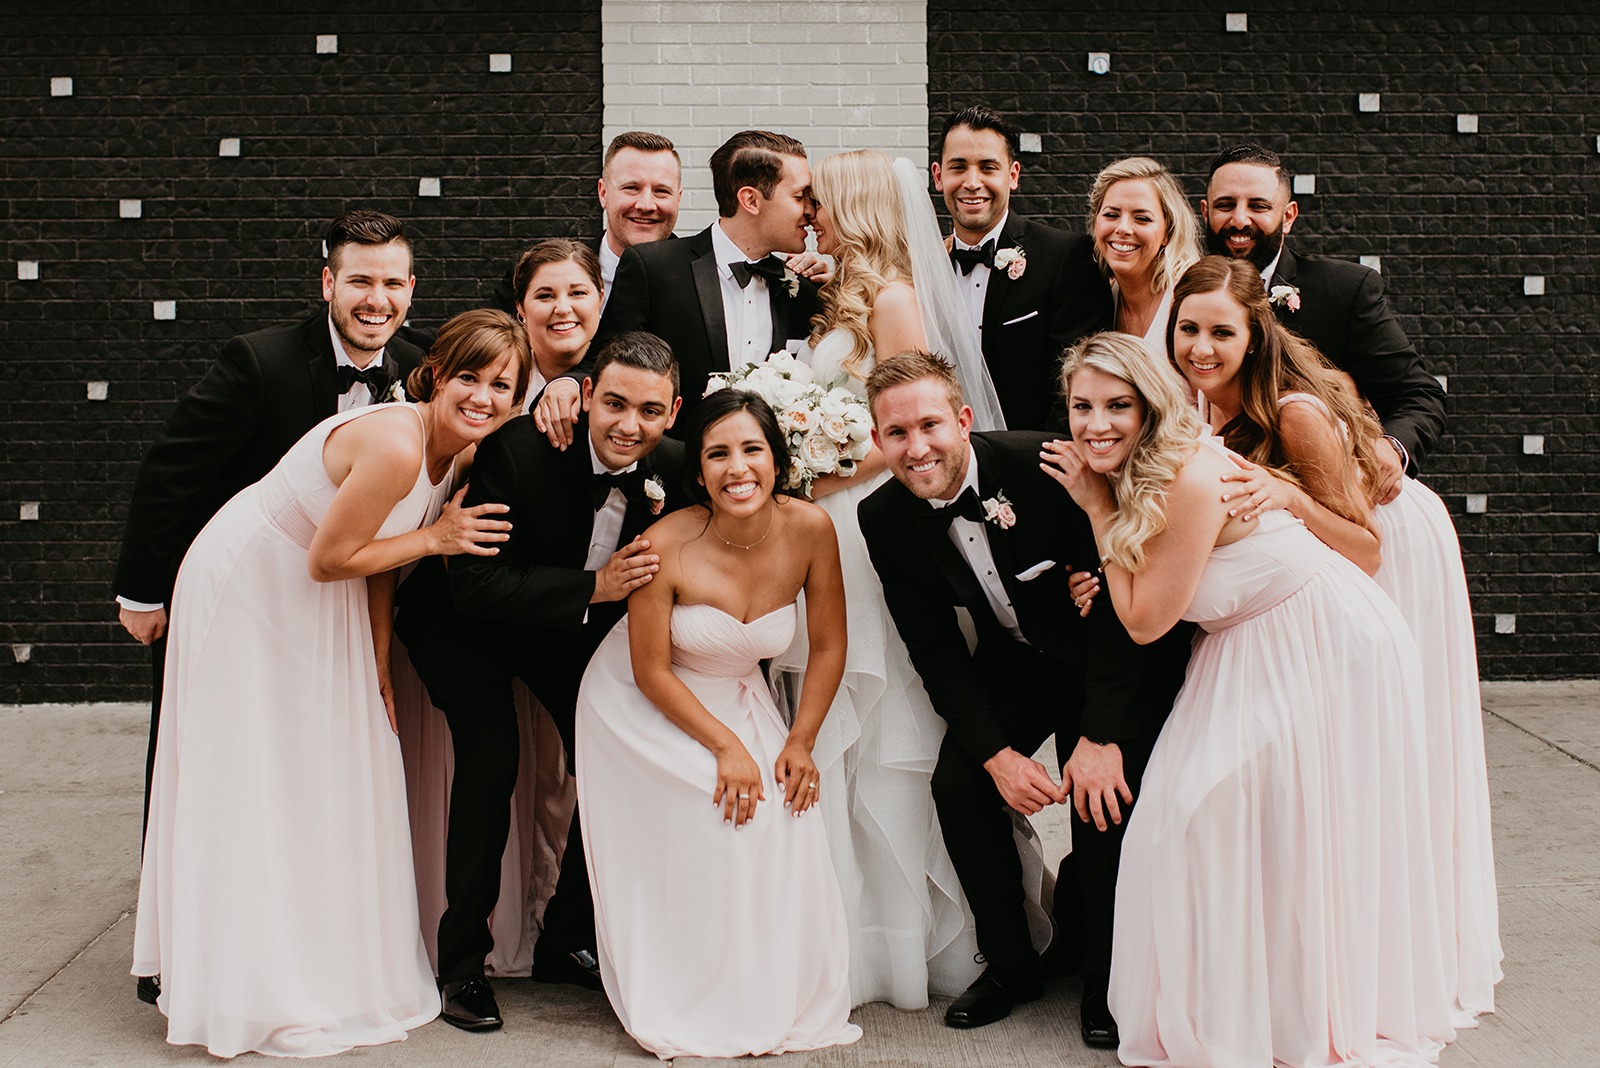 Fragoso Wedding in Downtown Las Vegas, NV - Bridal Party